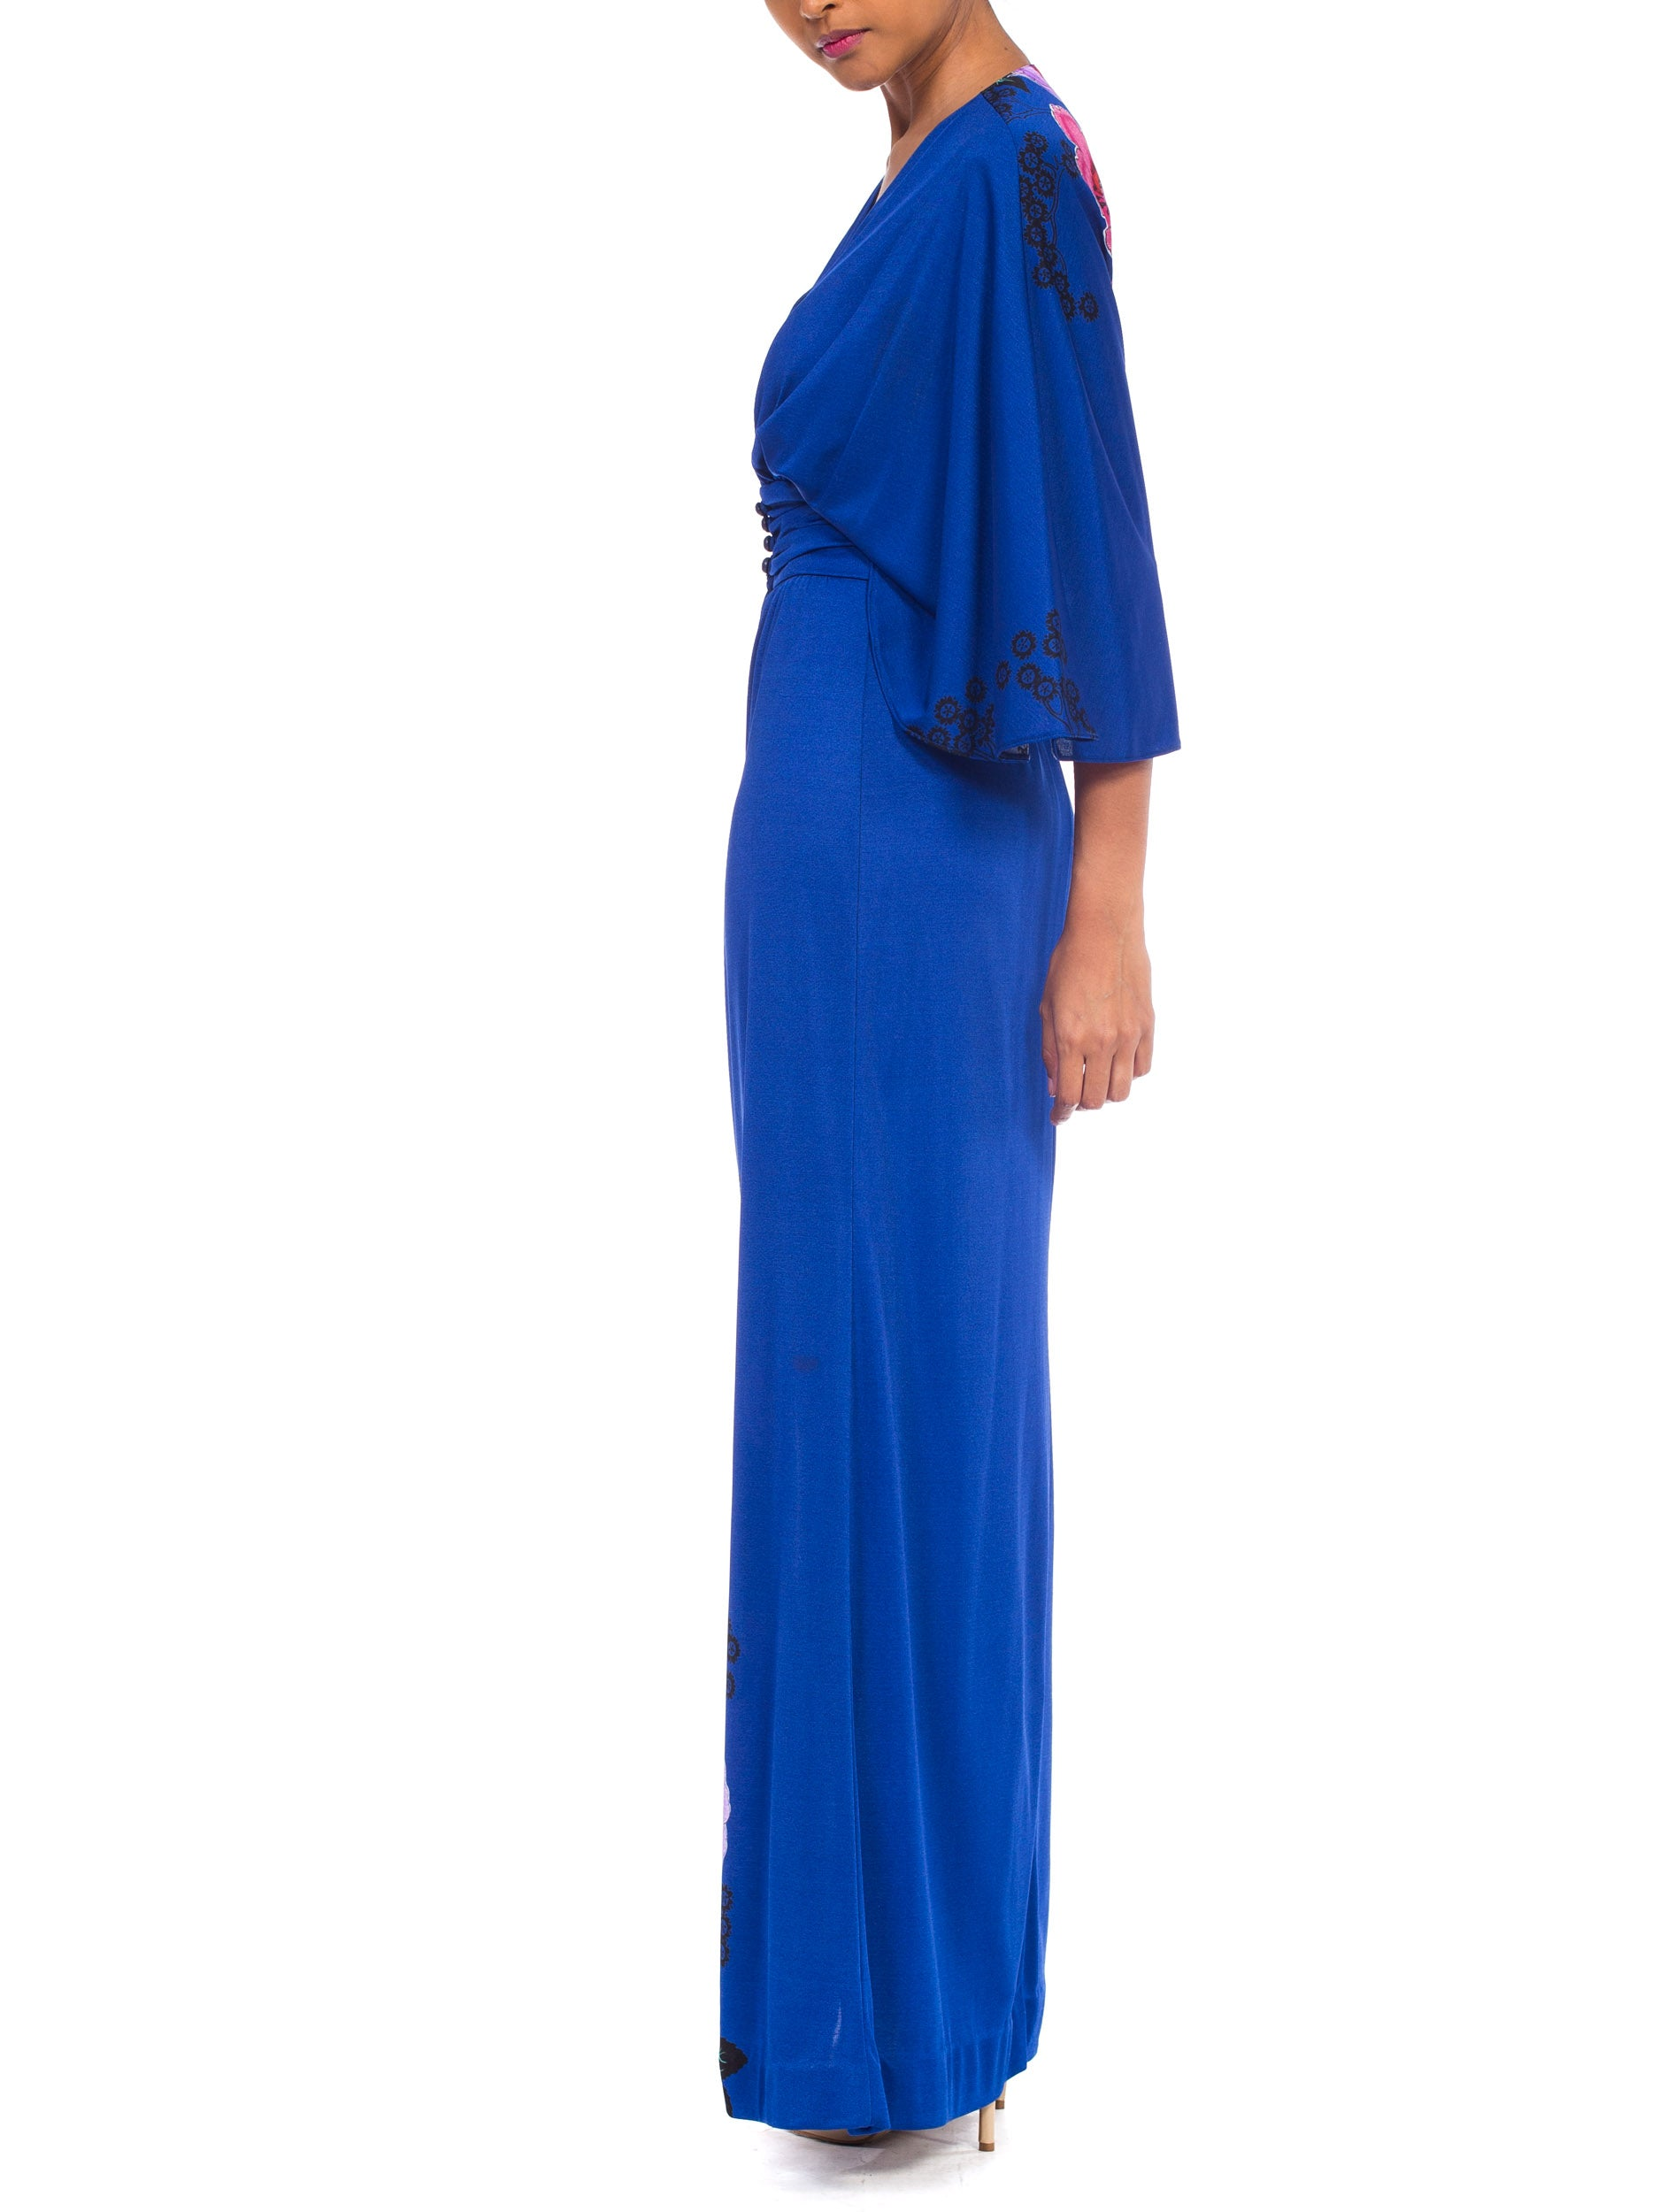 1970S Giorgio Beverly Hillls Cobalt Blue Polyester Jersey Low Cut Disco Dress